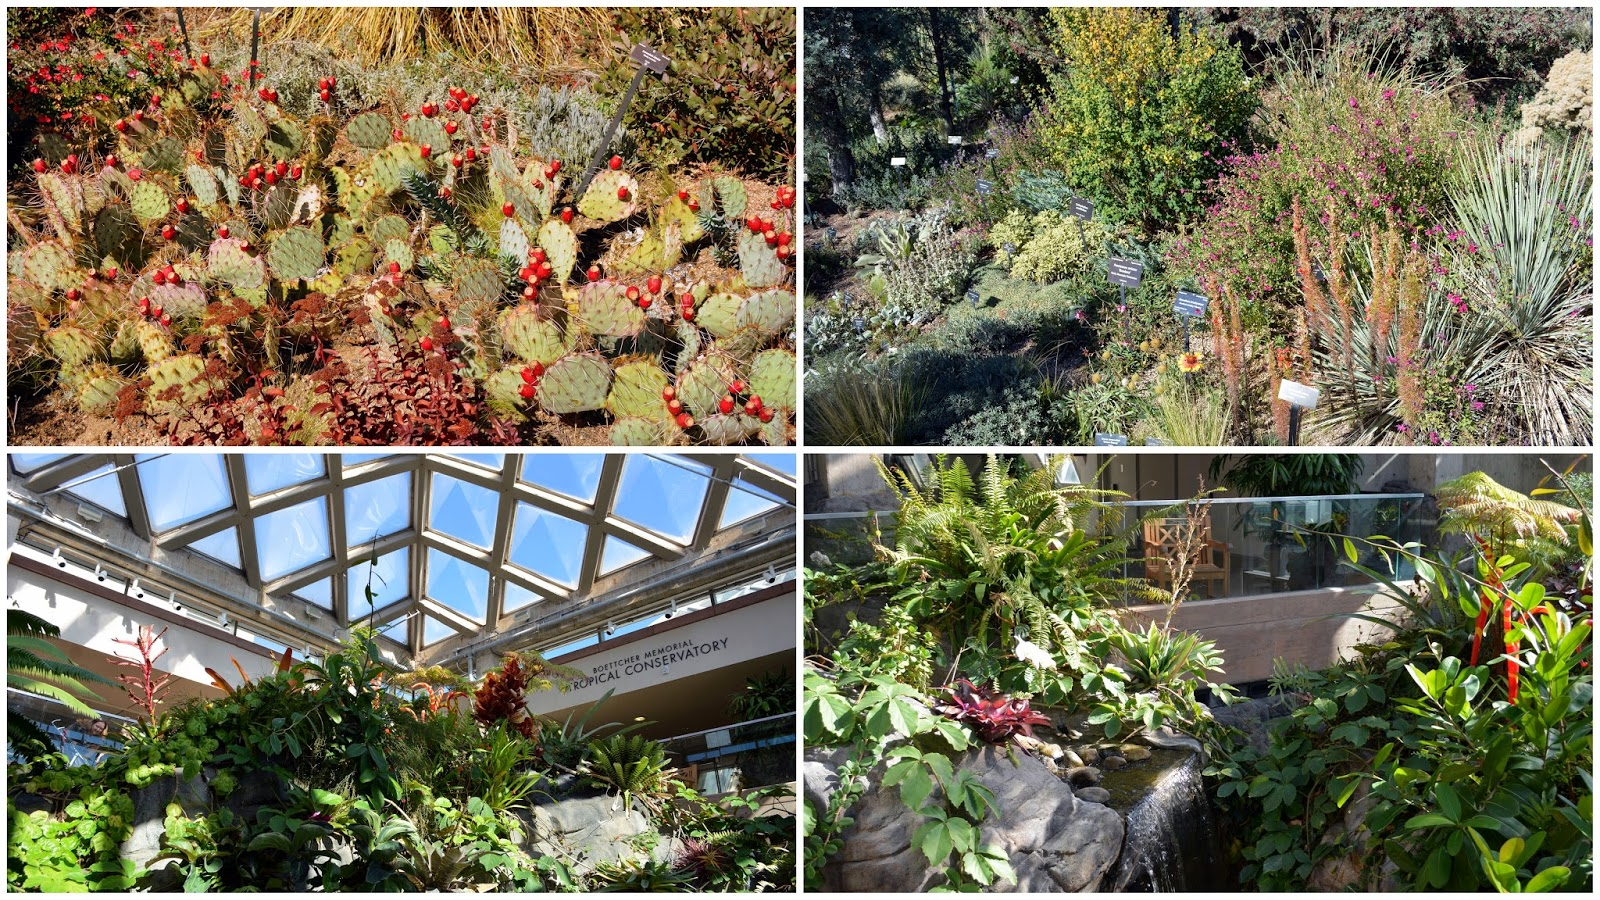 We Also Visited The Boettcher Memorial Tropical Conservatory Within The Denver  Botanical Garden, Where Cacti And Succulents Were Displayed Outside, ...